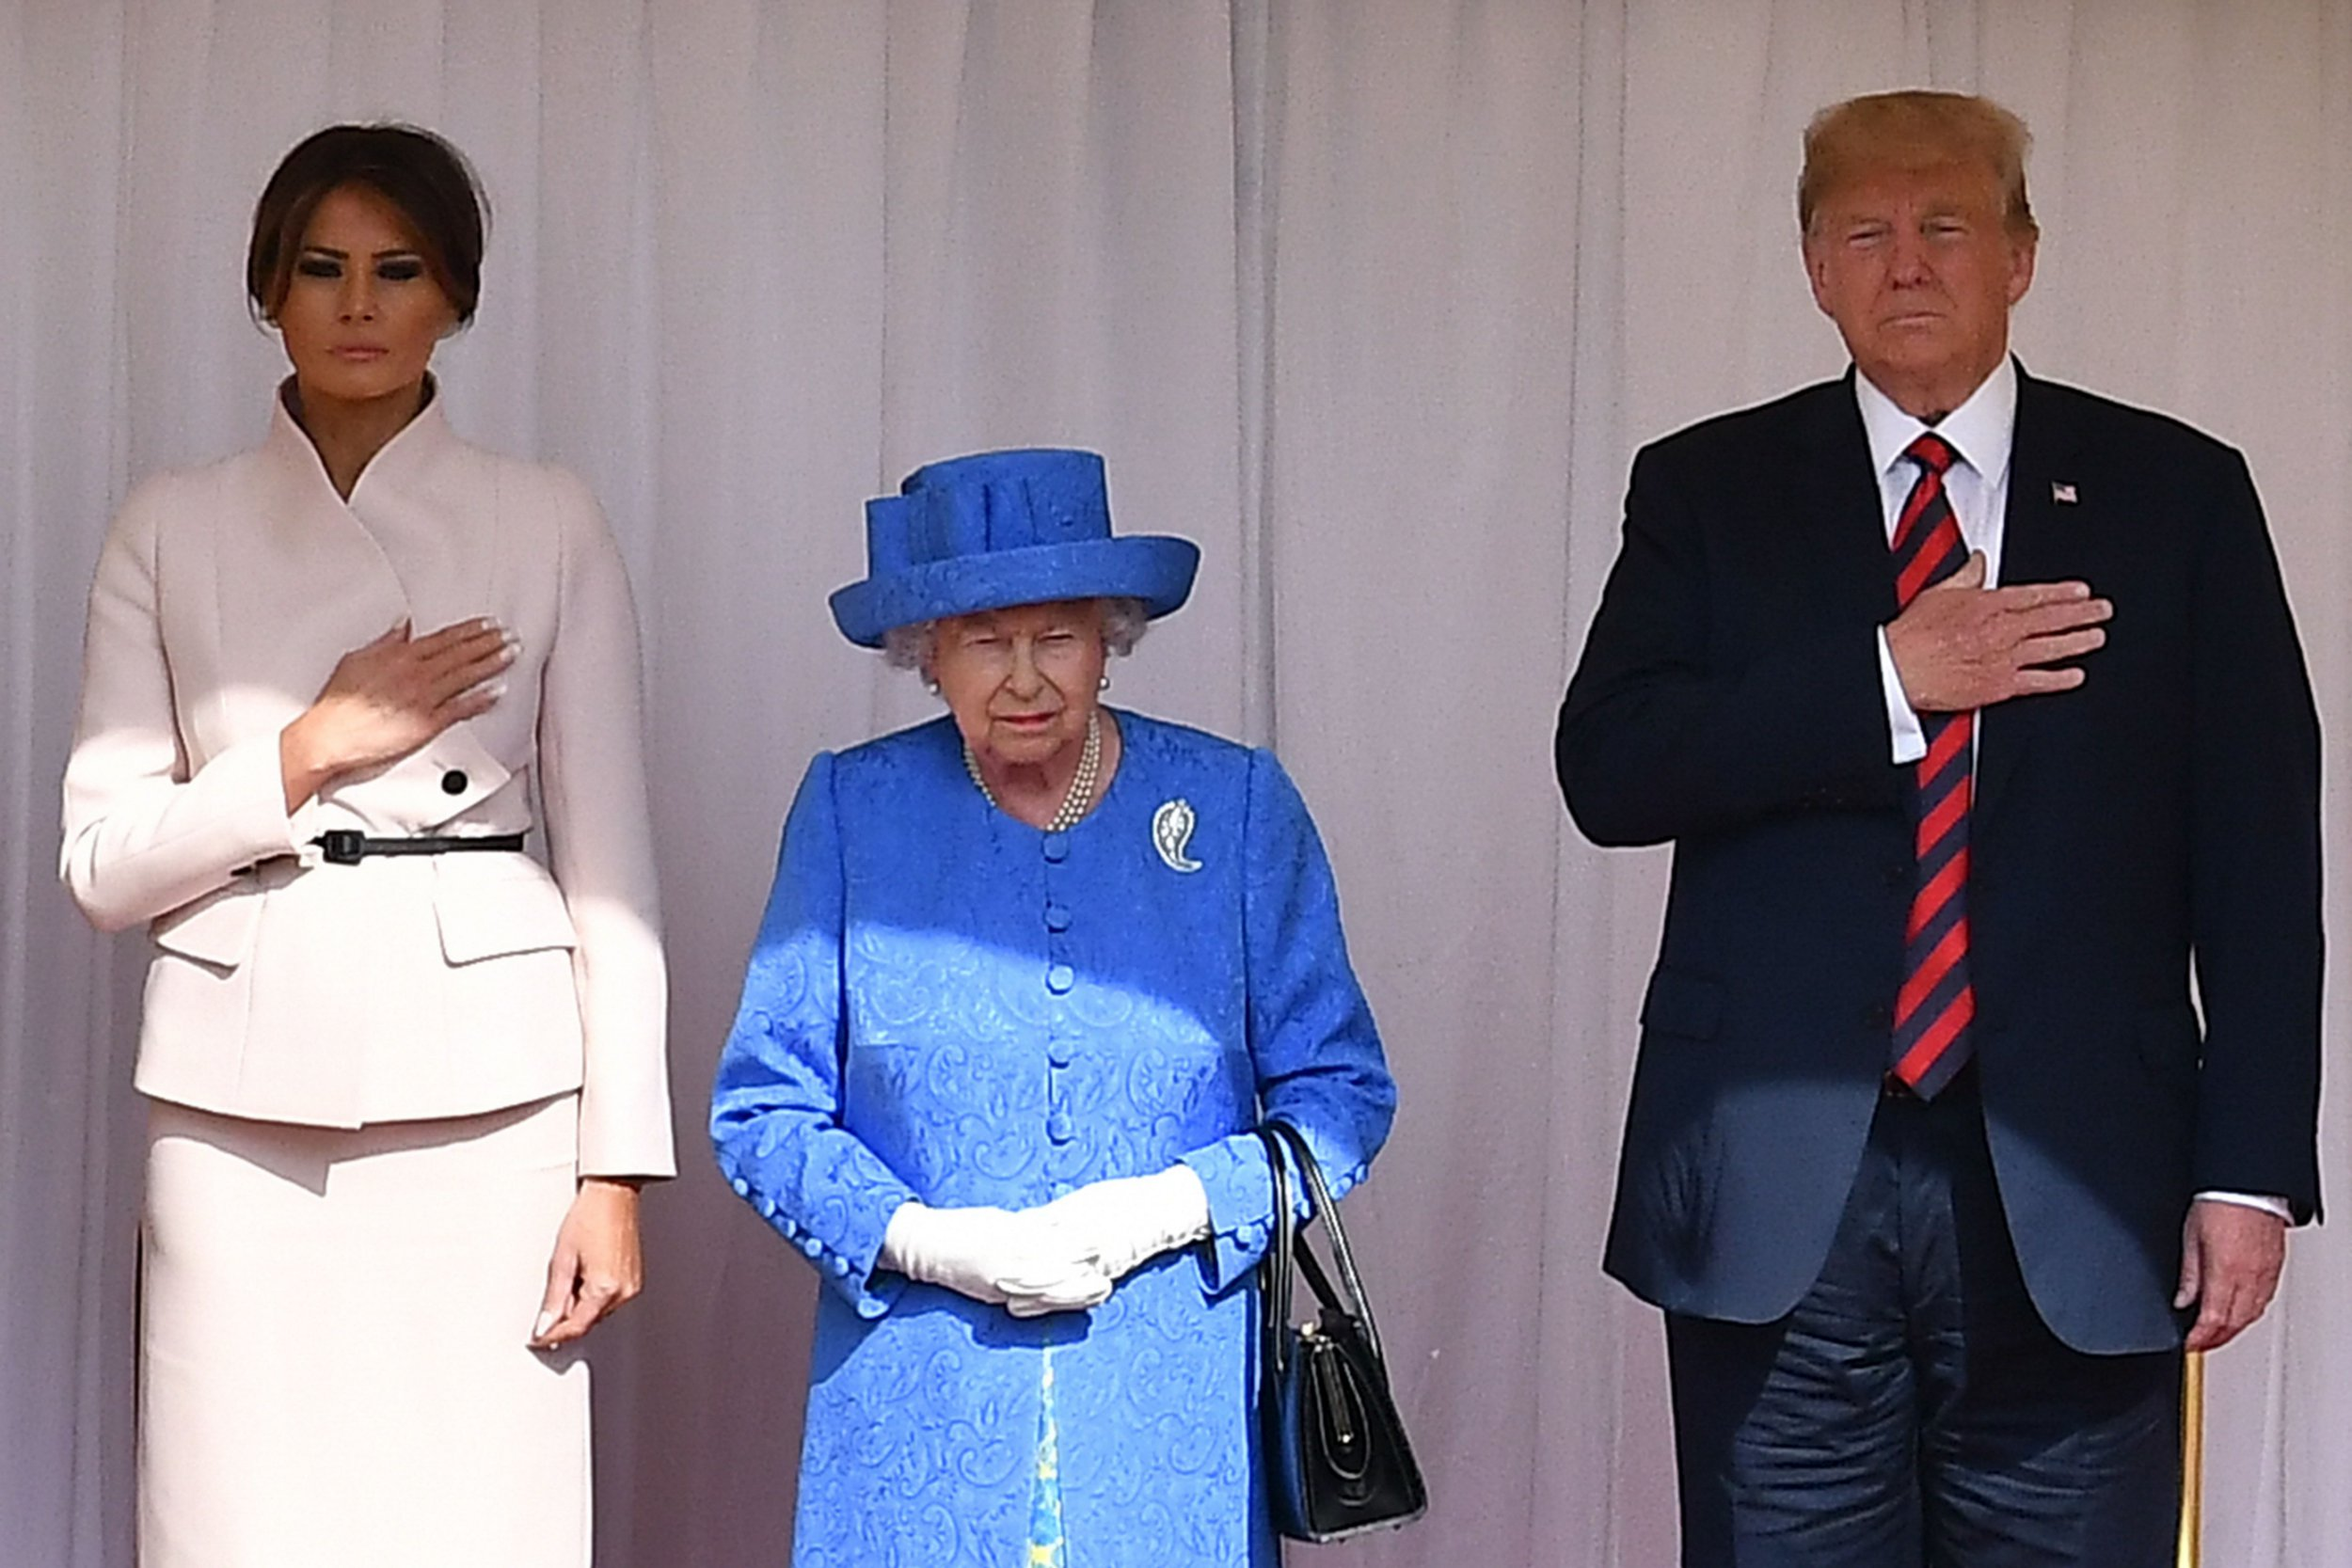 "Britain's Queen Elizabeth II (C) stands with US President Donald Trump (R) and US First Lady Melania Trump (L) on the dias in the Quadrangle listening to a band of guardsmen play the US national anthem during a ceremonial welcome at Windsor Castle in Windsor, west of London, on July 13, 2018 for an engagement with Britain's Queen Elizabeth II on the second day of Trump's UK visit. - US President Donald Trump launched an extraordinary attack on Prime Minister Theresa May's Brexit strategy, plunging the transatlantic ""special relationship"" to a new low as they prepared to meet Friday on the second day of his tumultuous trip to Britain. (Photo by Ben STANSALL / POOL / AFP) (Photo credit should read BEN STANSALL/AFP/Getty Images)"